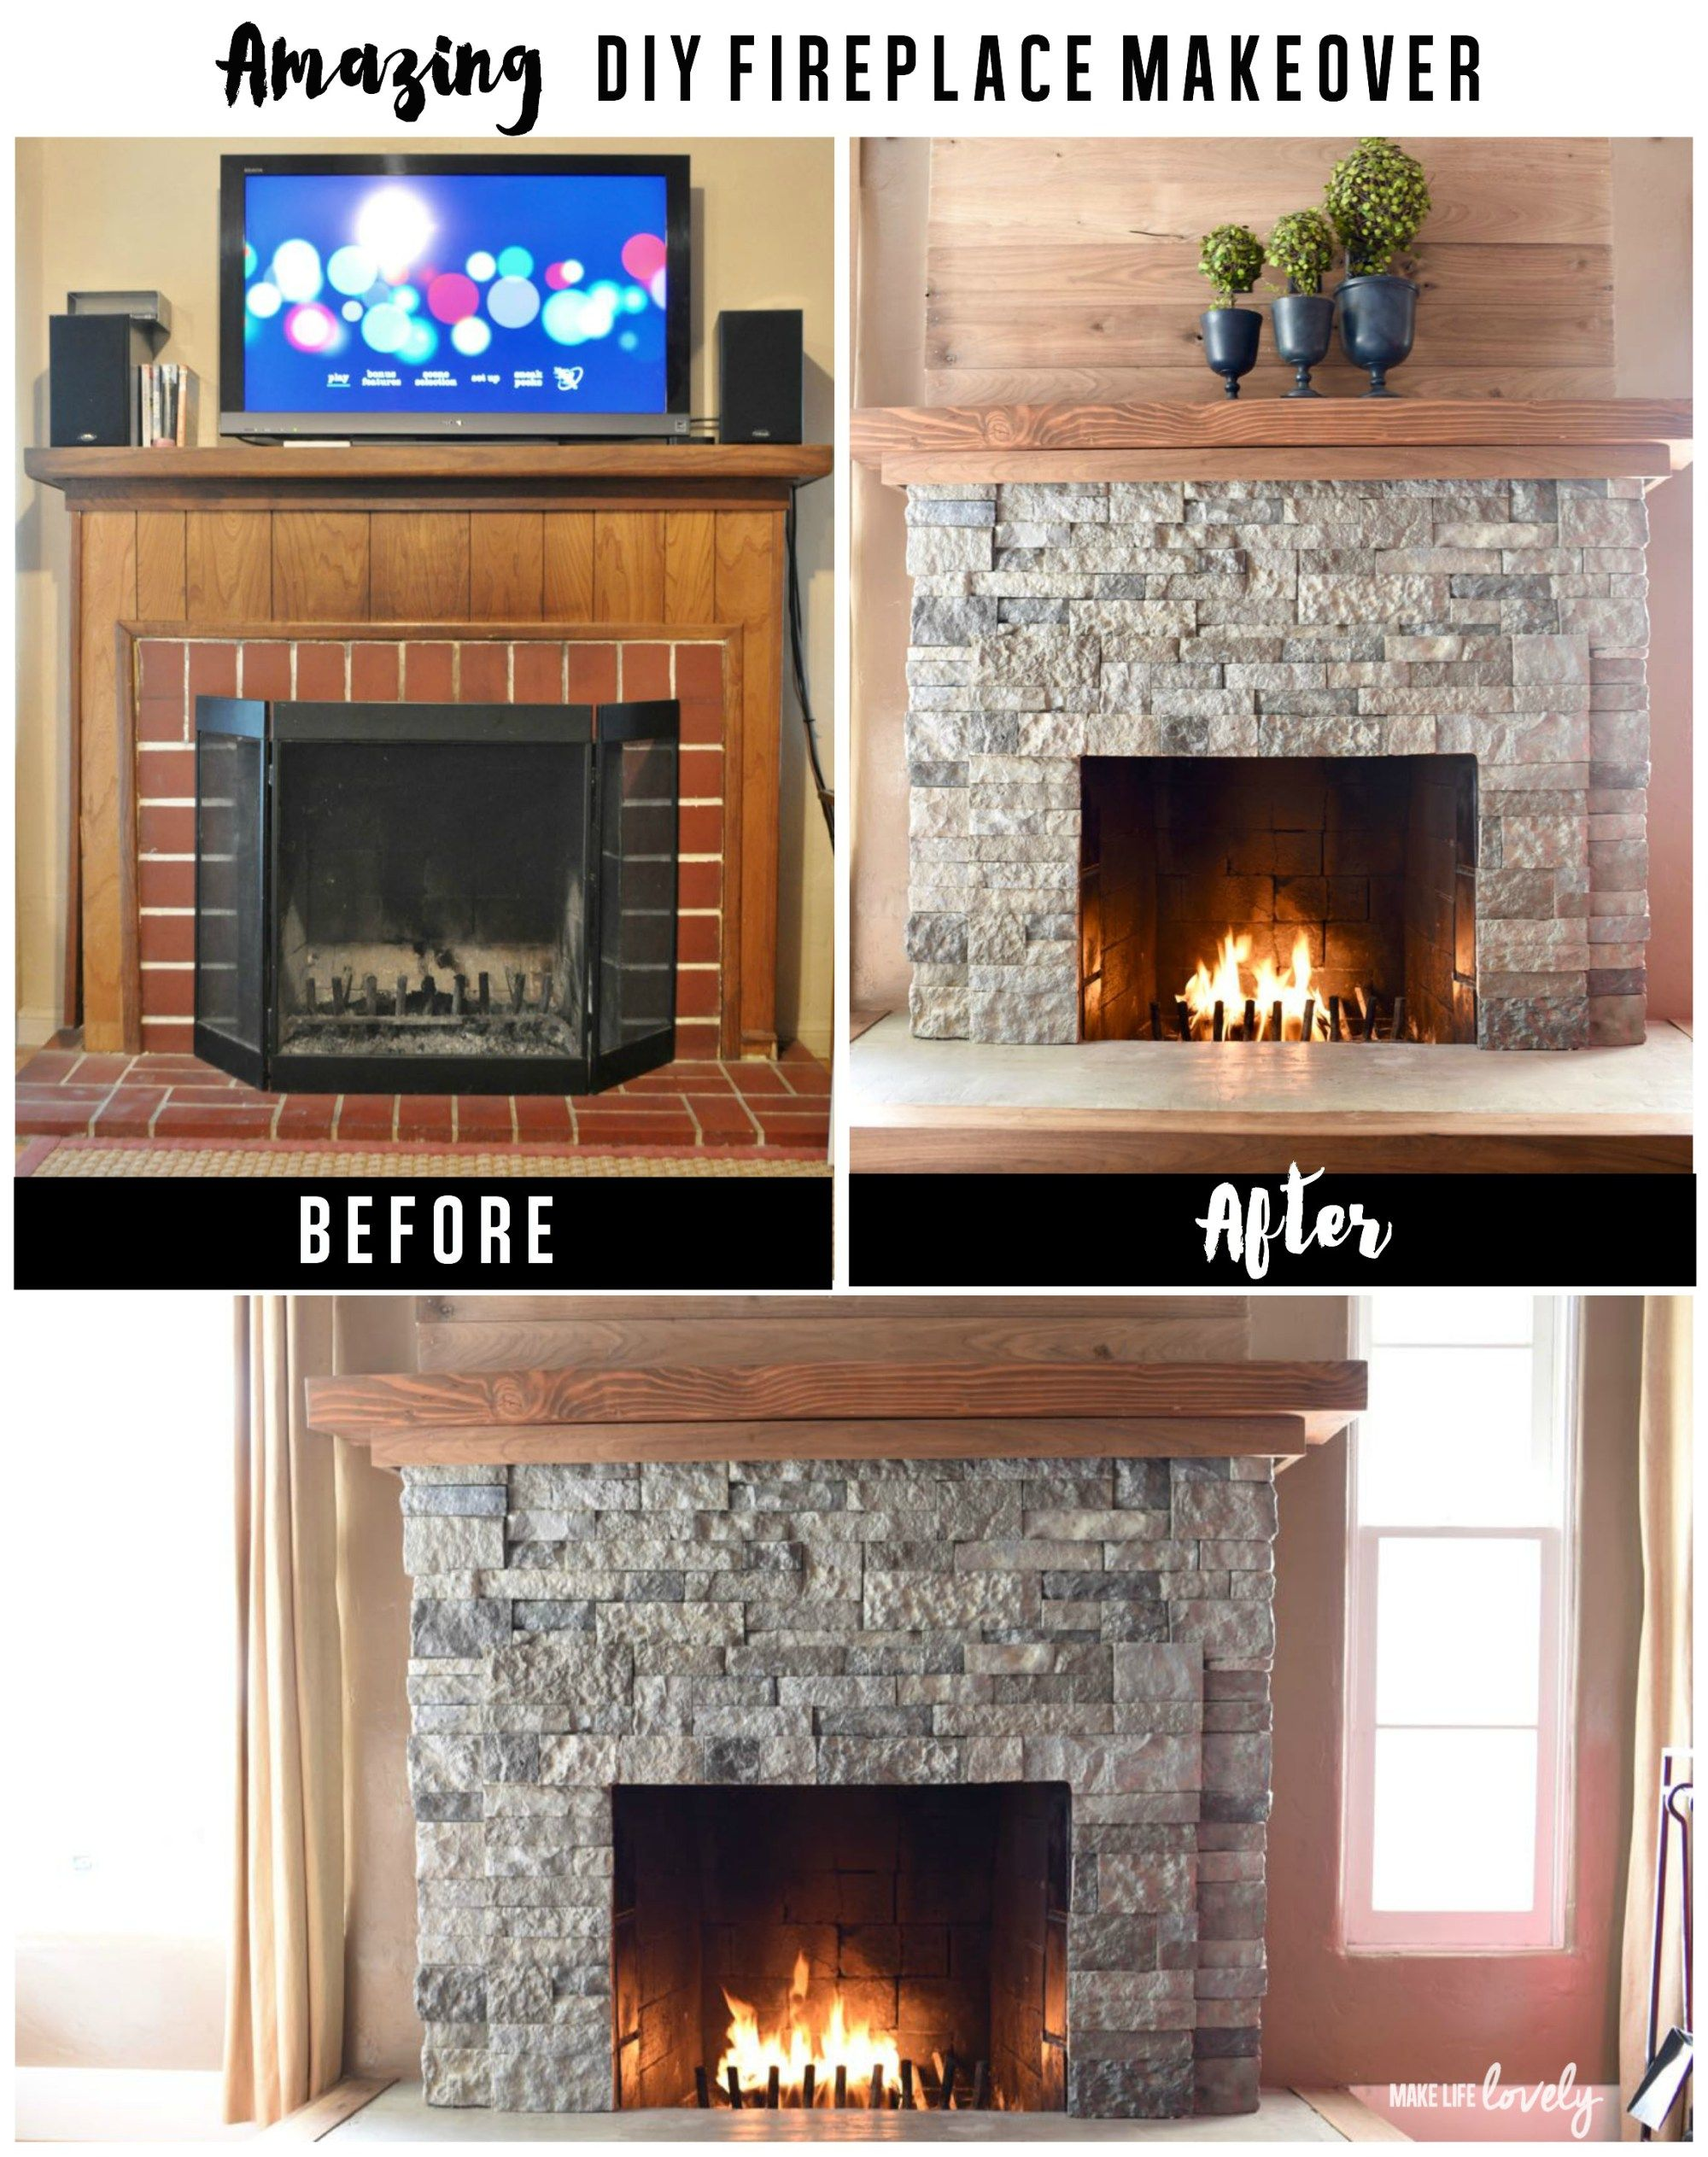 AirStone Fireplace Makeover Airstone fireplace, Airstone